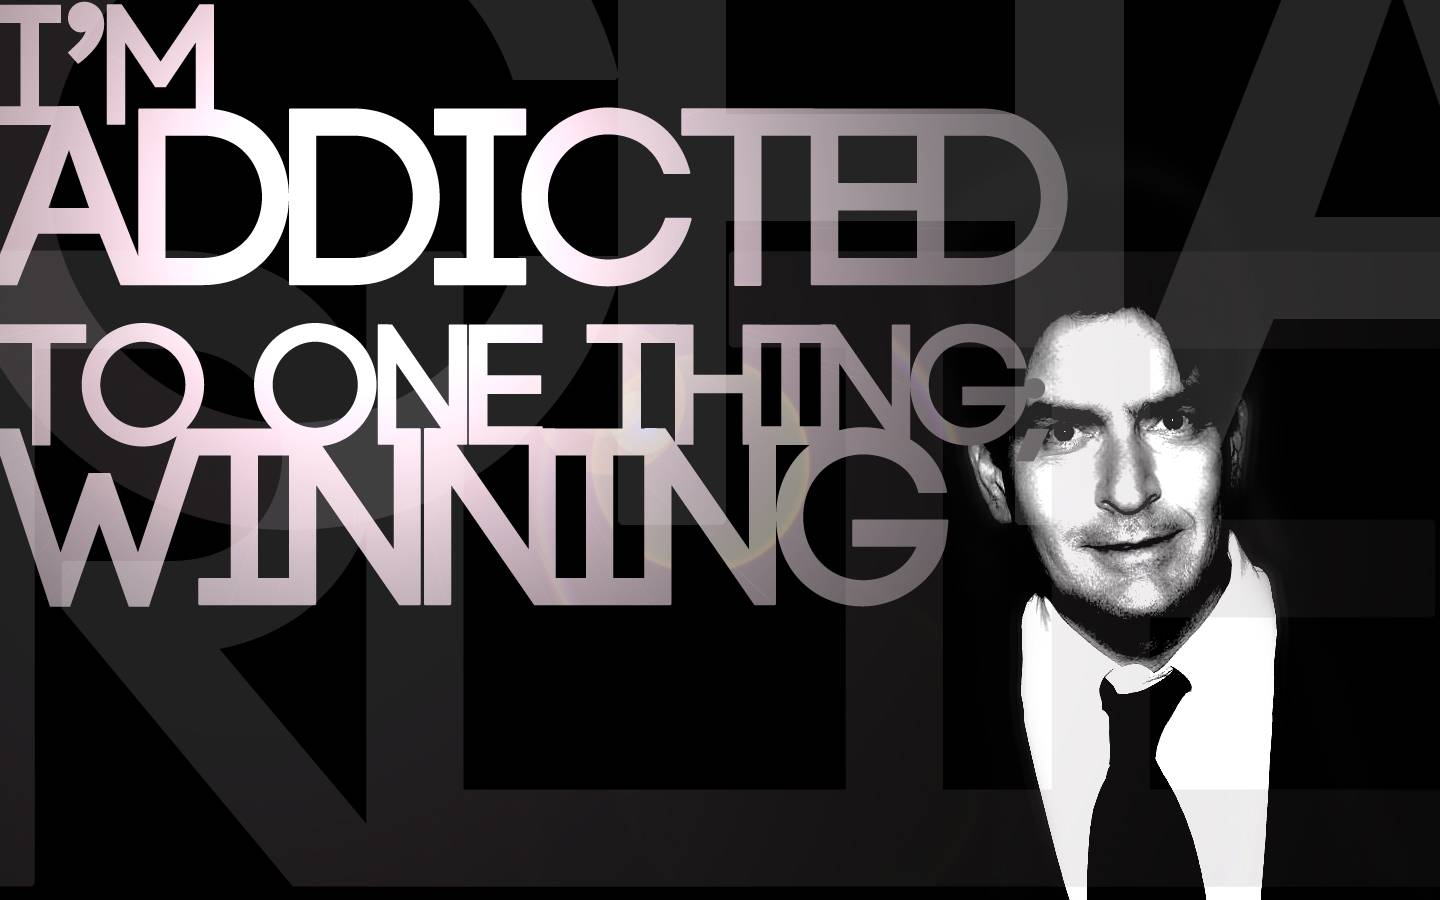 I m addicted to one thing winning - charlie sheen